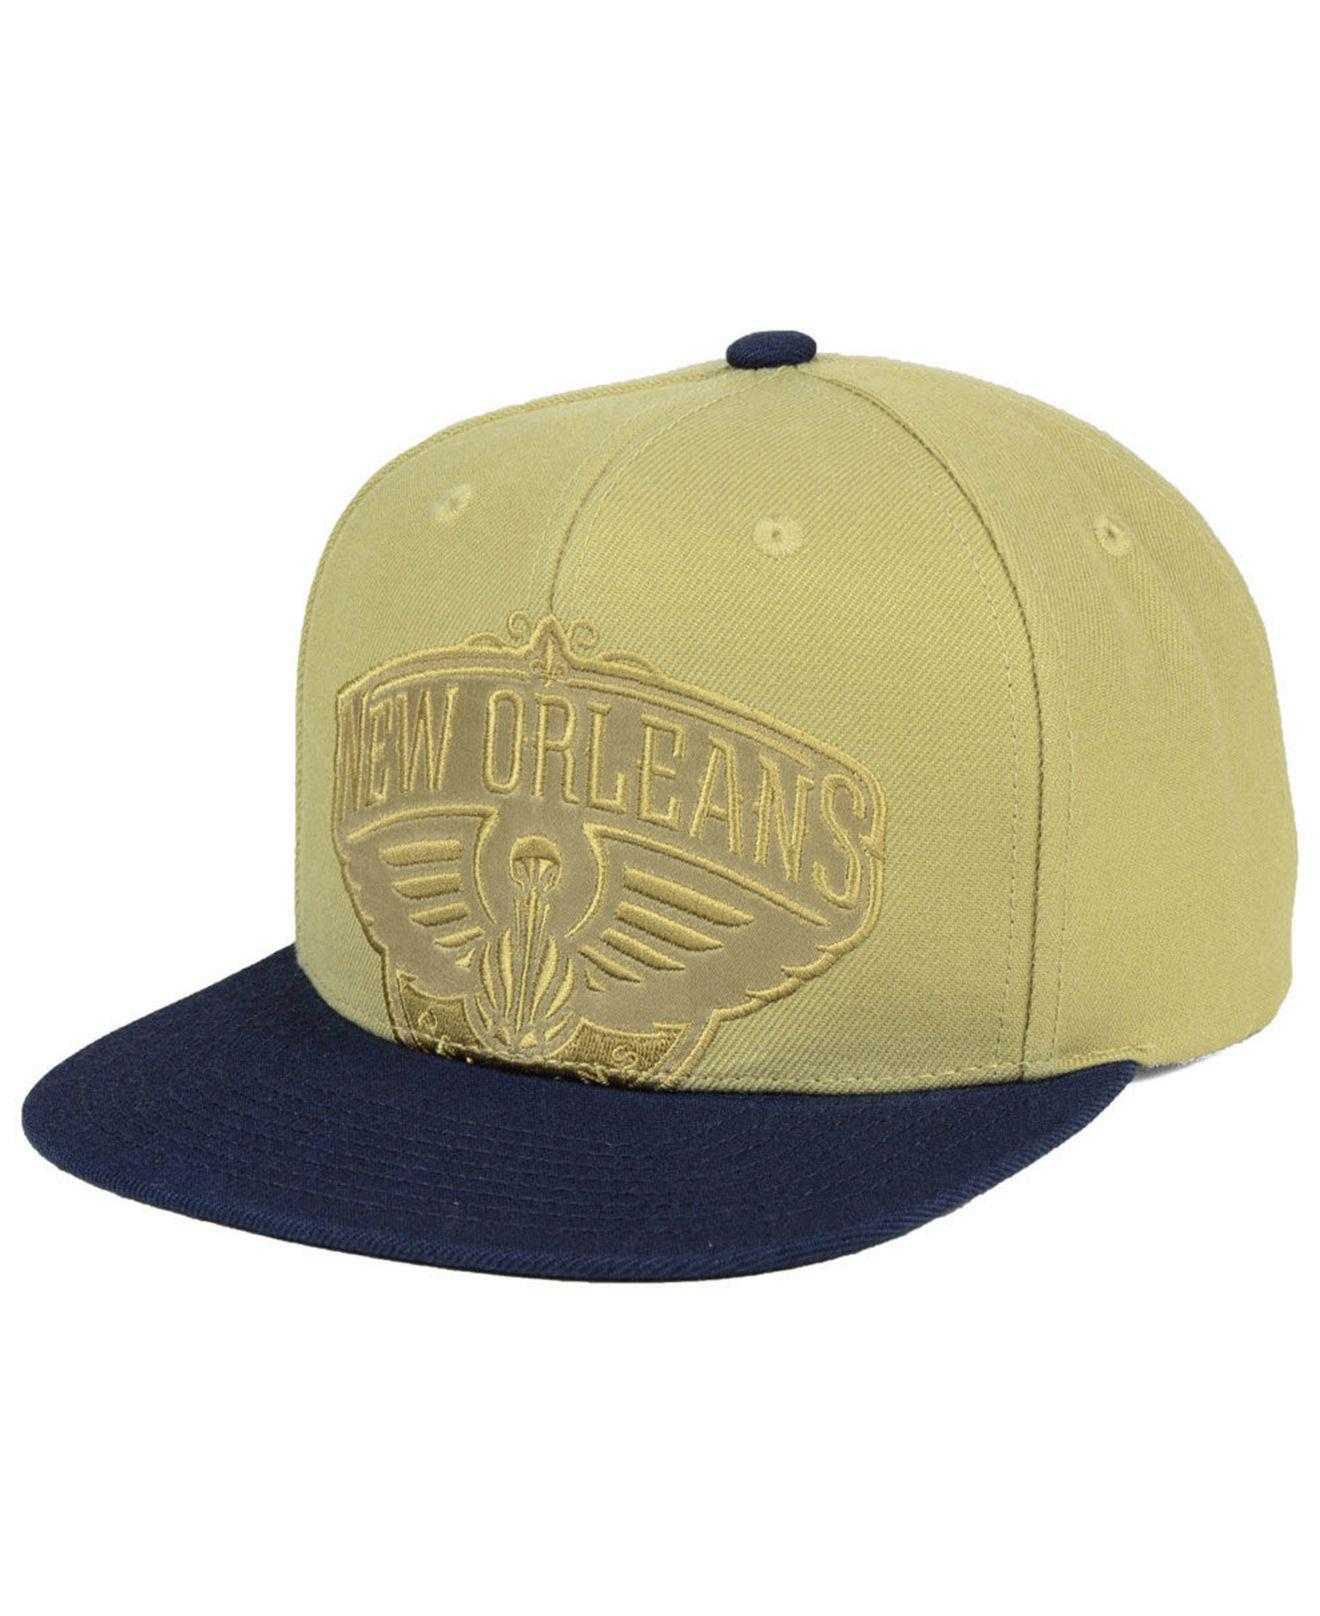 info for 31bca 70f32 ... netherlands mitchell ness. mens new orleans pelicans cropped satin snapback  cap 40587 364f5